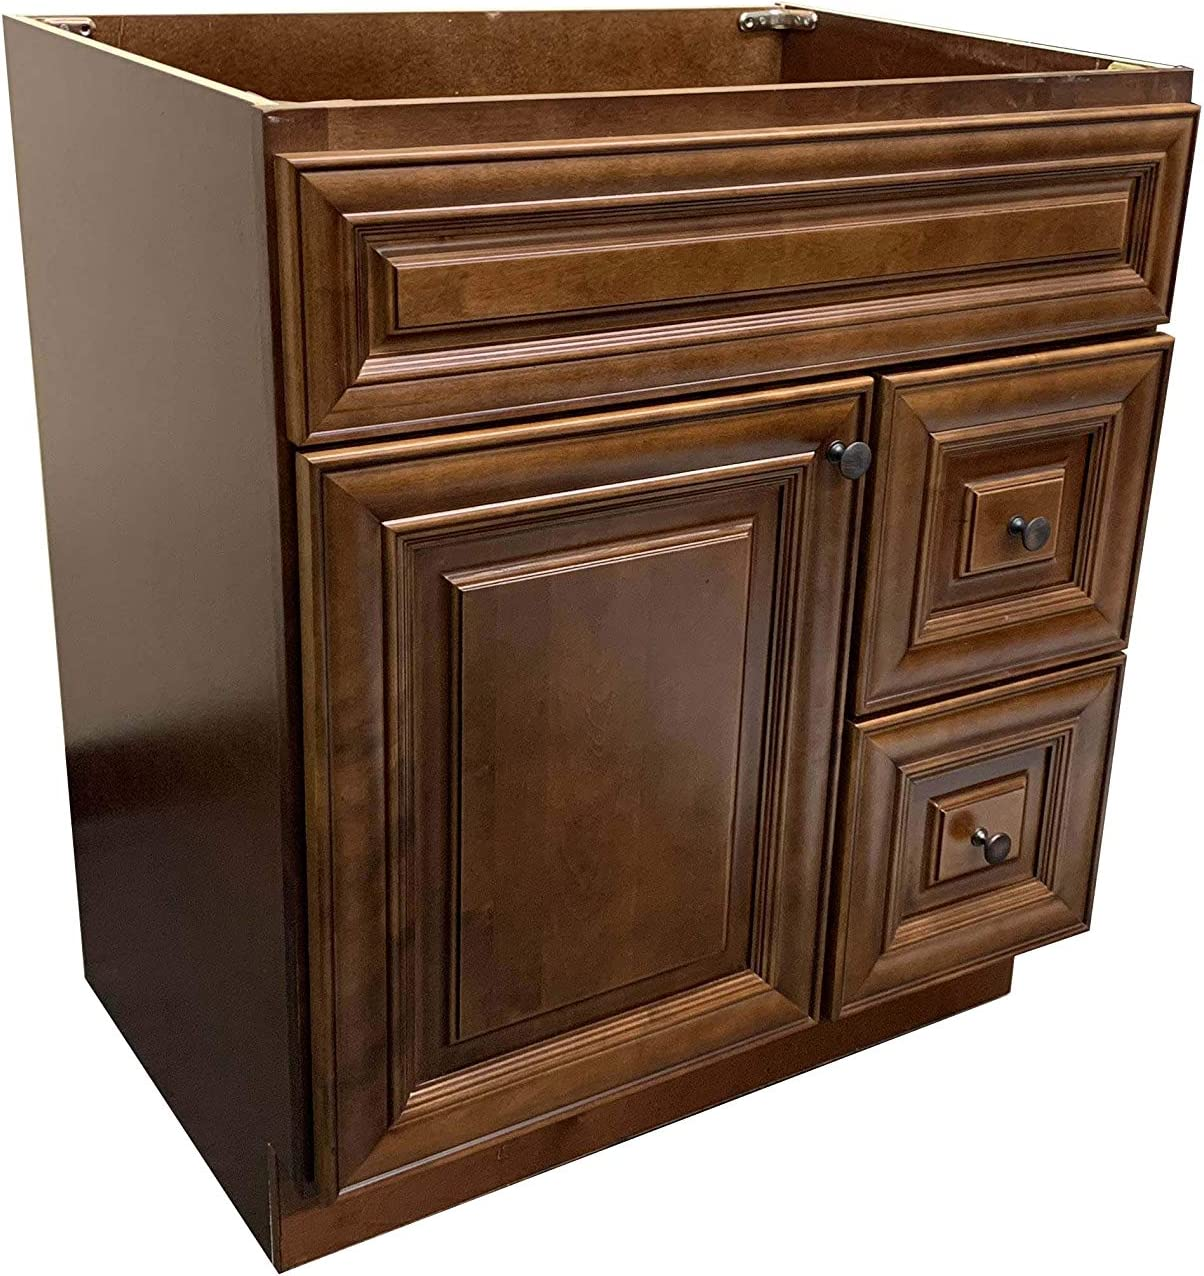 New Maple walnut Single-sink Bathroom Vanity Base Cabinet 30 Wide x 21 Deep MW-V3021DLR